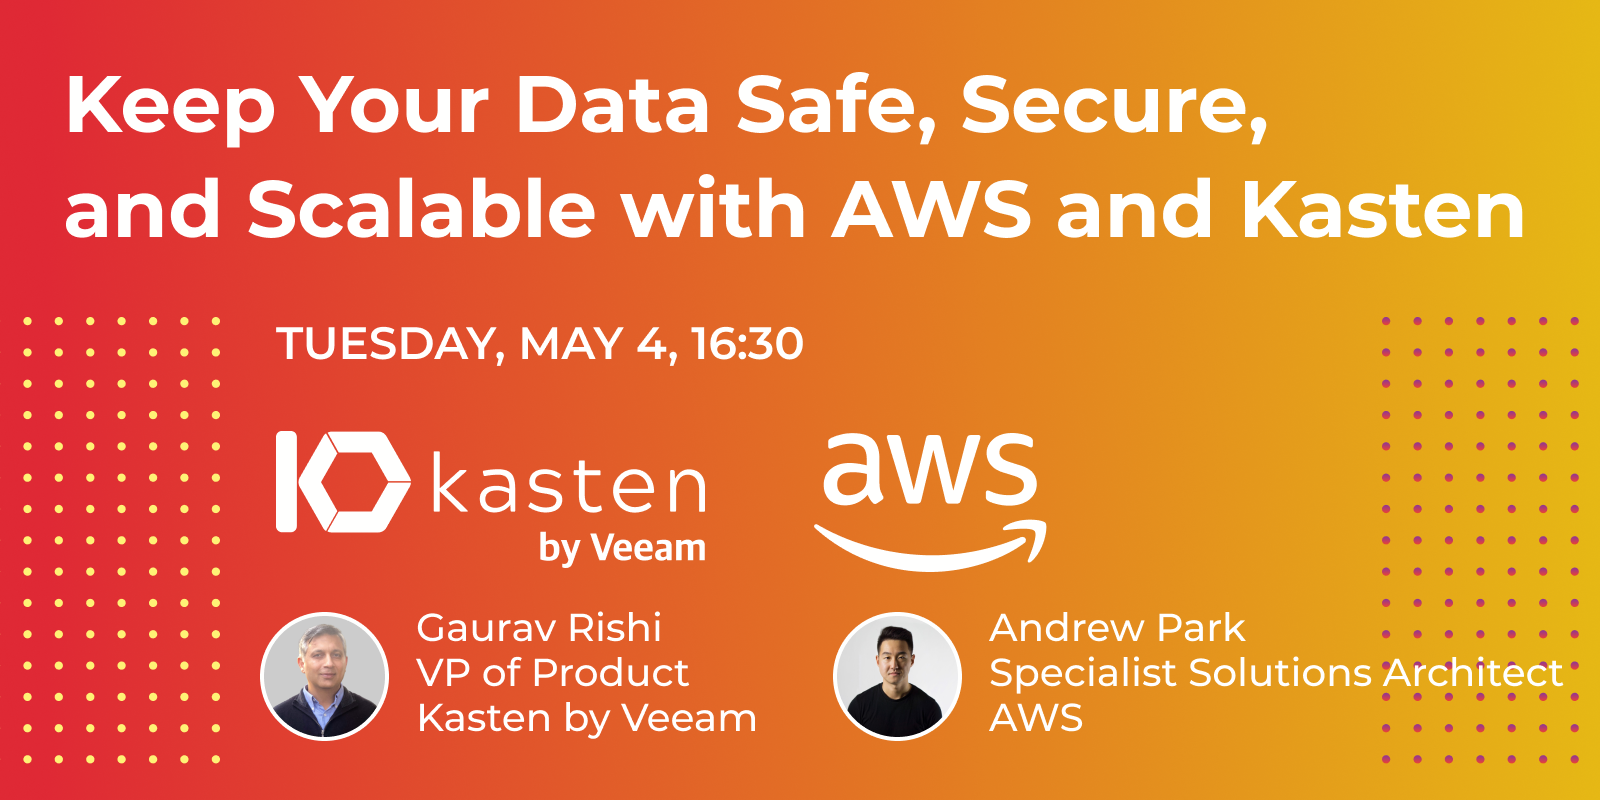 KubeCon-Keep_Your_Data_Safe,_Secure,_and_Scalable_with_AWS_and_Kasten